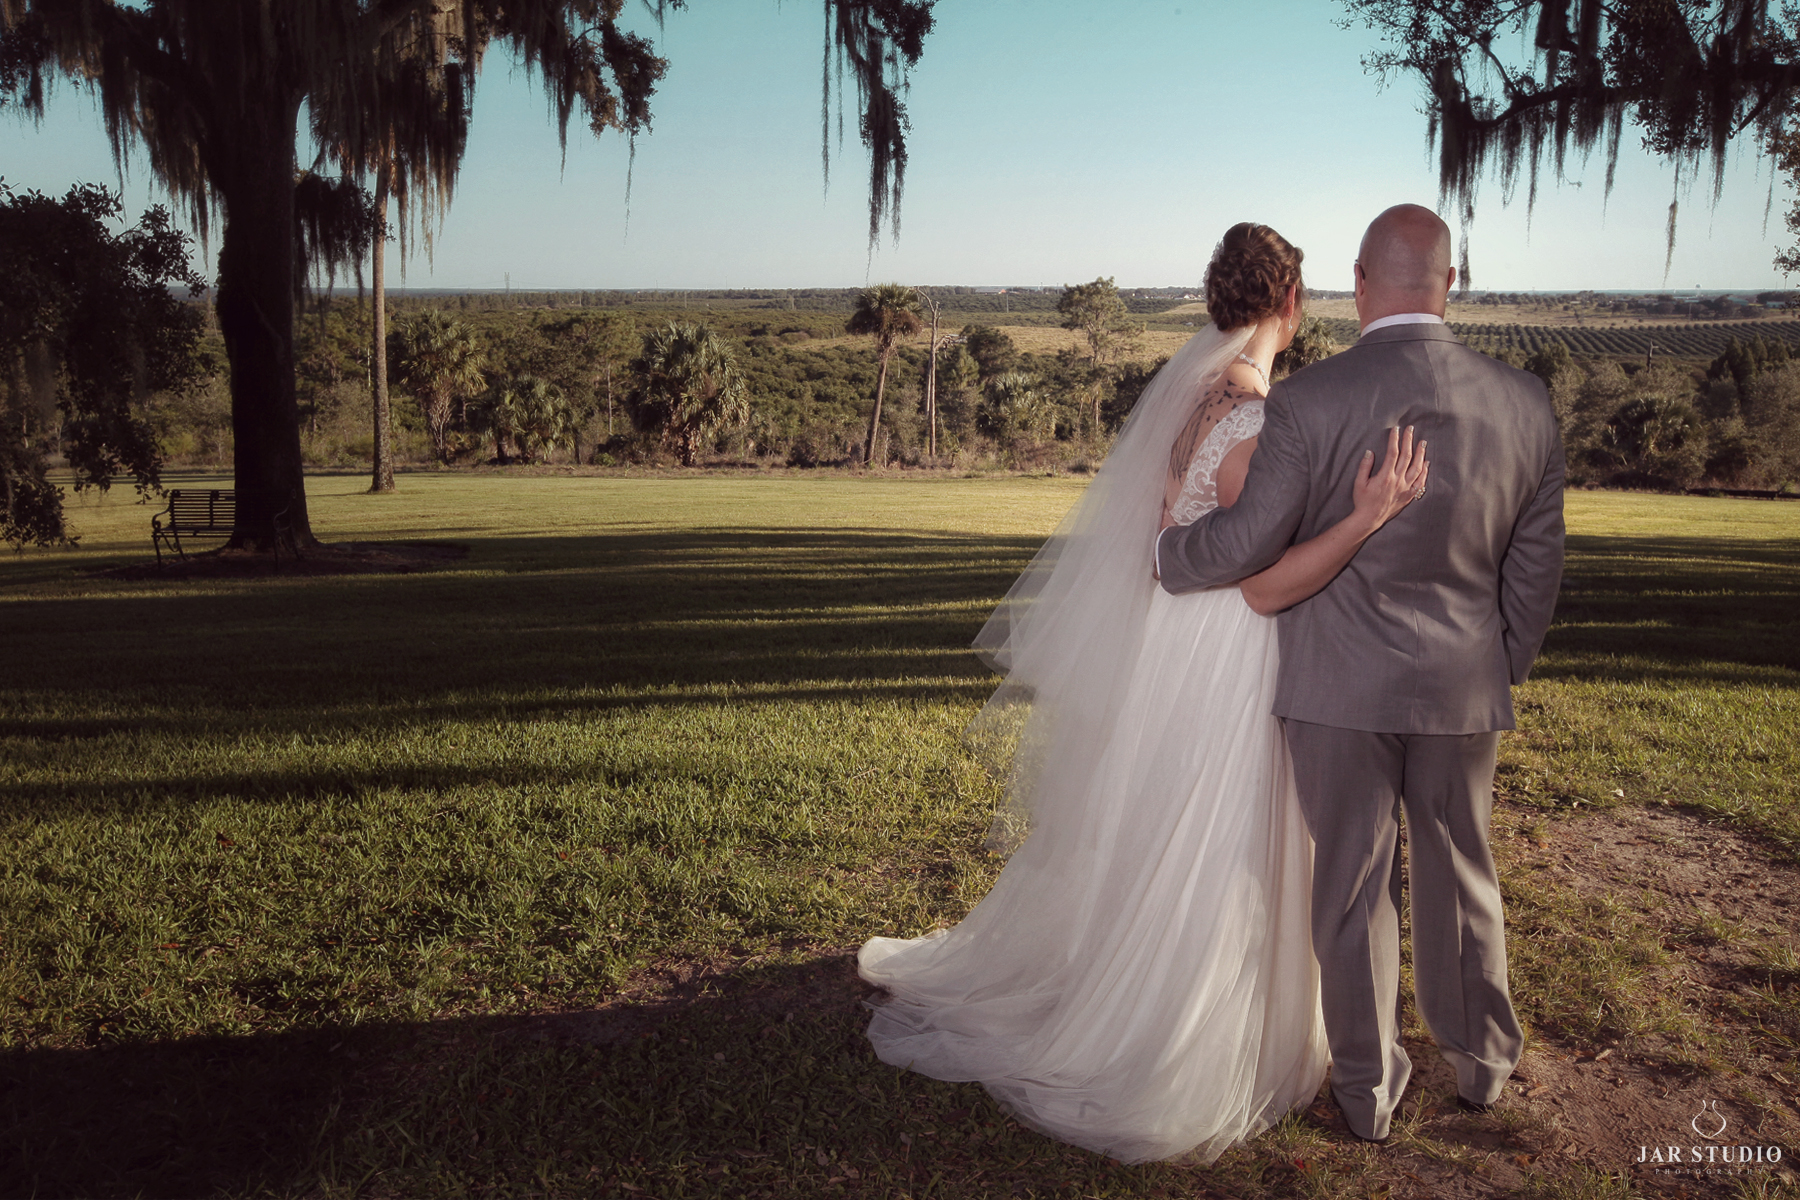 21-beautiful-sunset-garden-wedding-jarstudio-photography-orlando.JPG